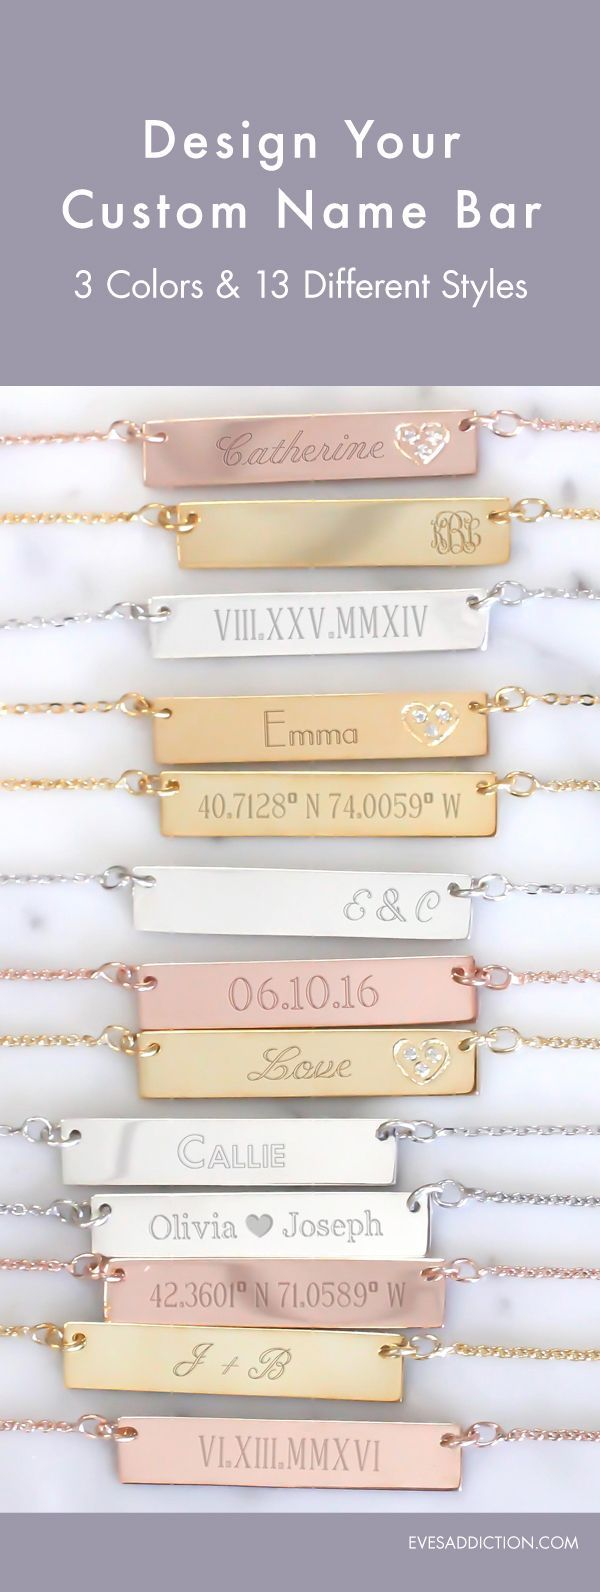 Try any of 13 ways to stylize your name bar necklace! From custom coordinates, dates, roman numerals, names and initials, you can customize your silver, gold or rose gold colored bar jewelry. Easy to customize online, ships in 24 hours and you can save 30